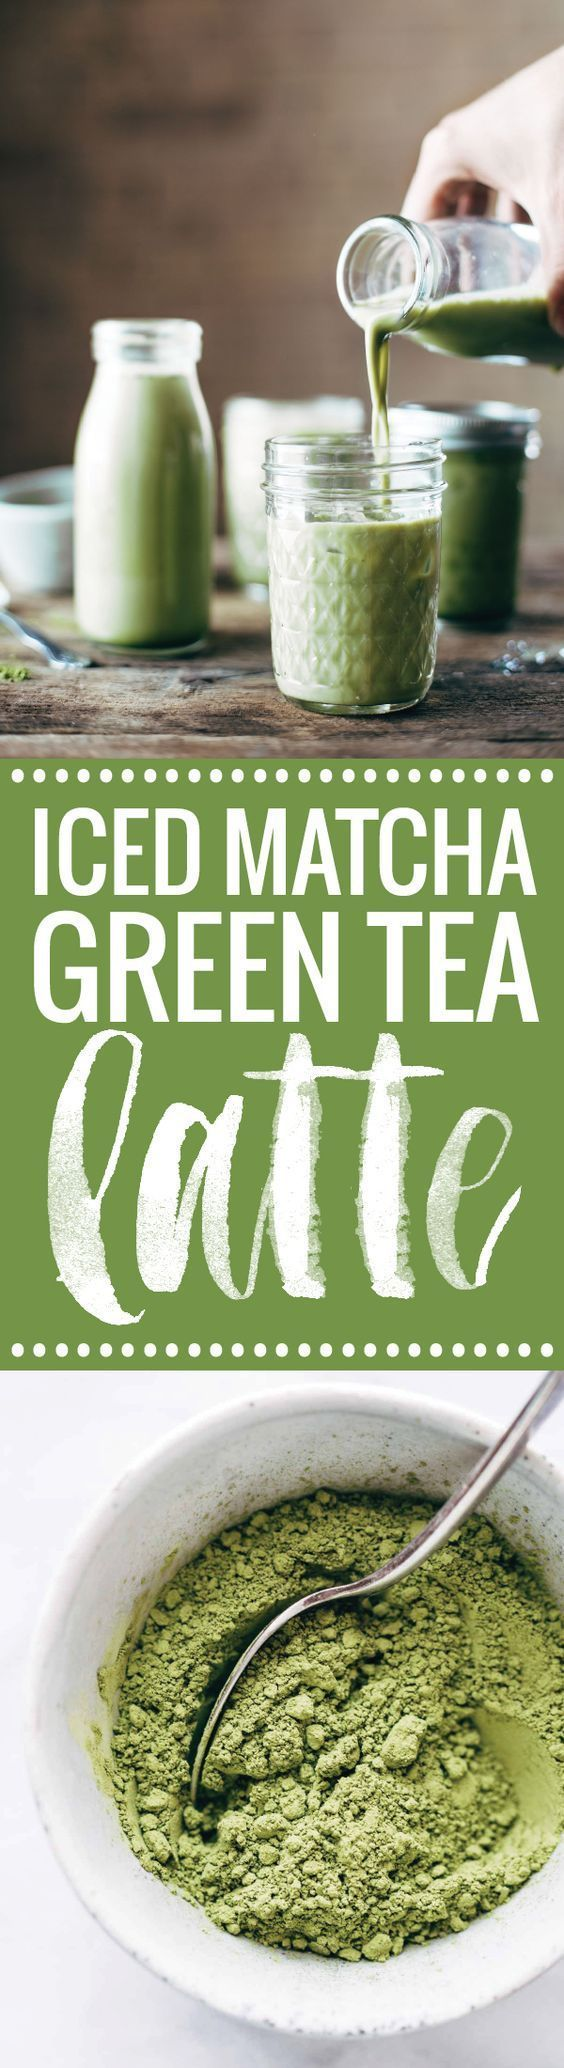 Iced Matcha Green Tea Latte - 3 ingredient perfection for summer! almond milk, honey or agave, and matcha powder. |    Find more stuff: www.victoriasbestmatchatea.com